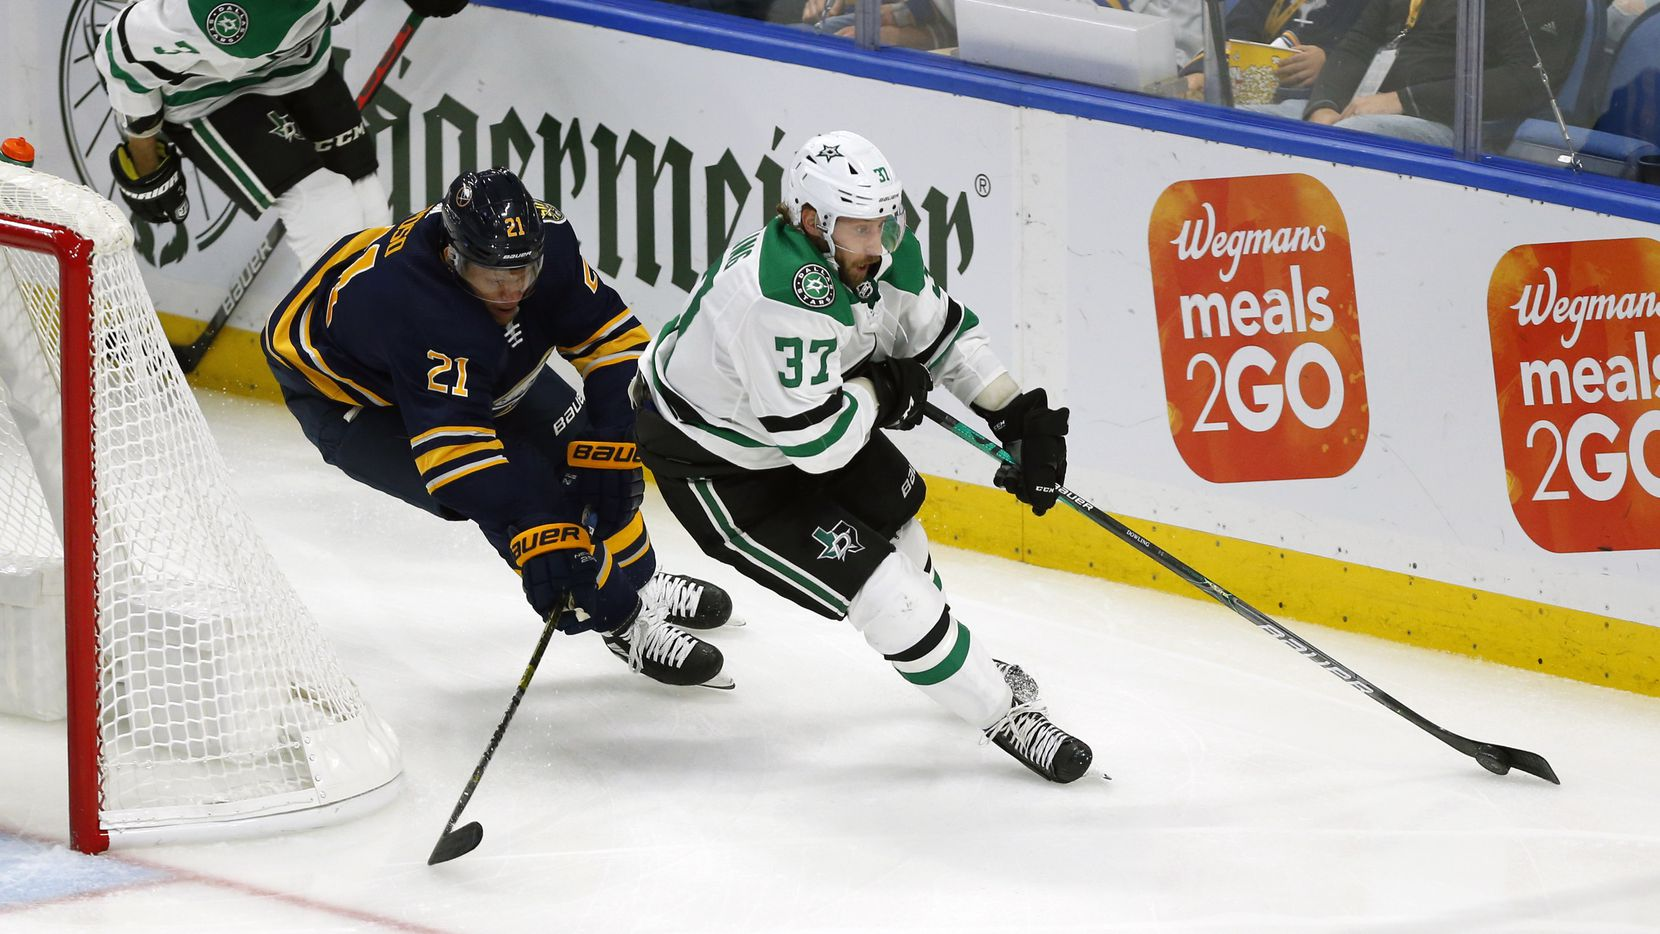 Buffalo Sabres forward Kyle Okposo (21) chases Dallas Stars forward Justin Dowling (37) during the first period of an NHL hockey game, Monday, Oct. 14, 2019, in Buffalo N.Y. (AP Photo/Jeffrey T. Barnes)